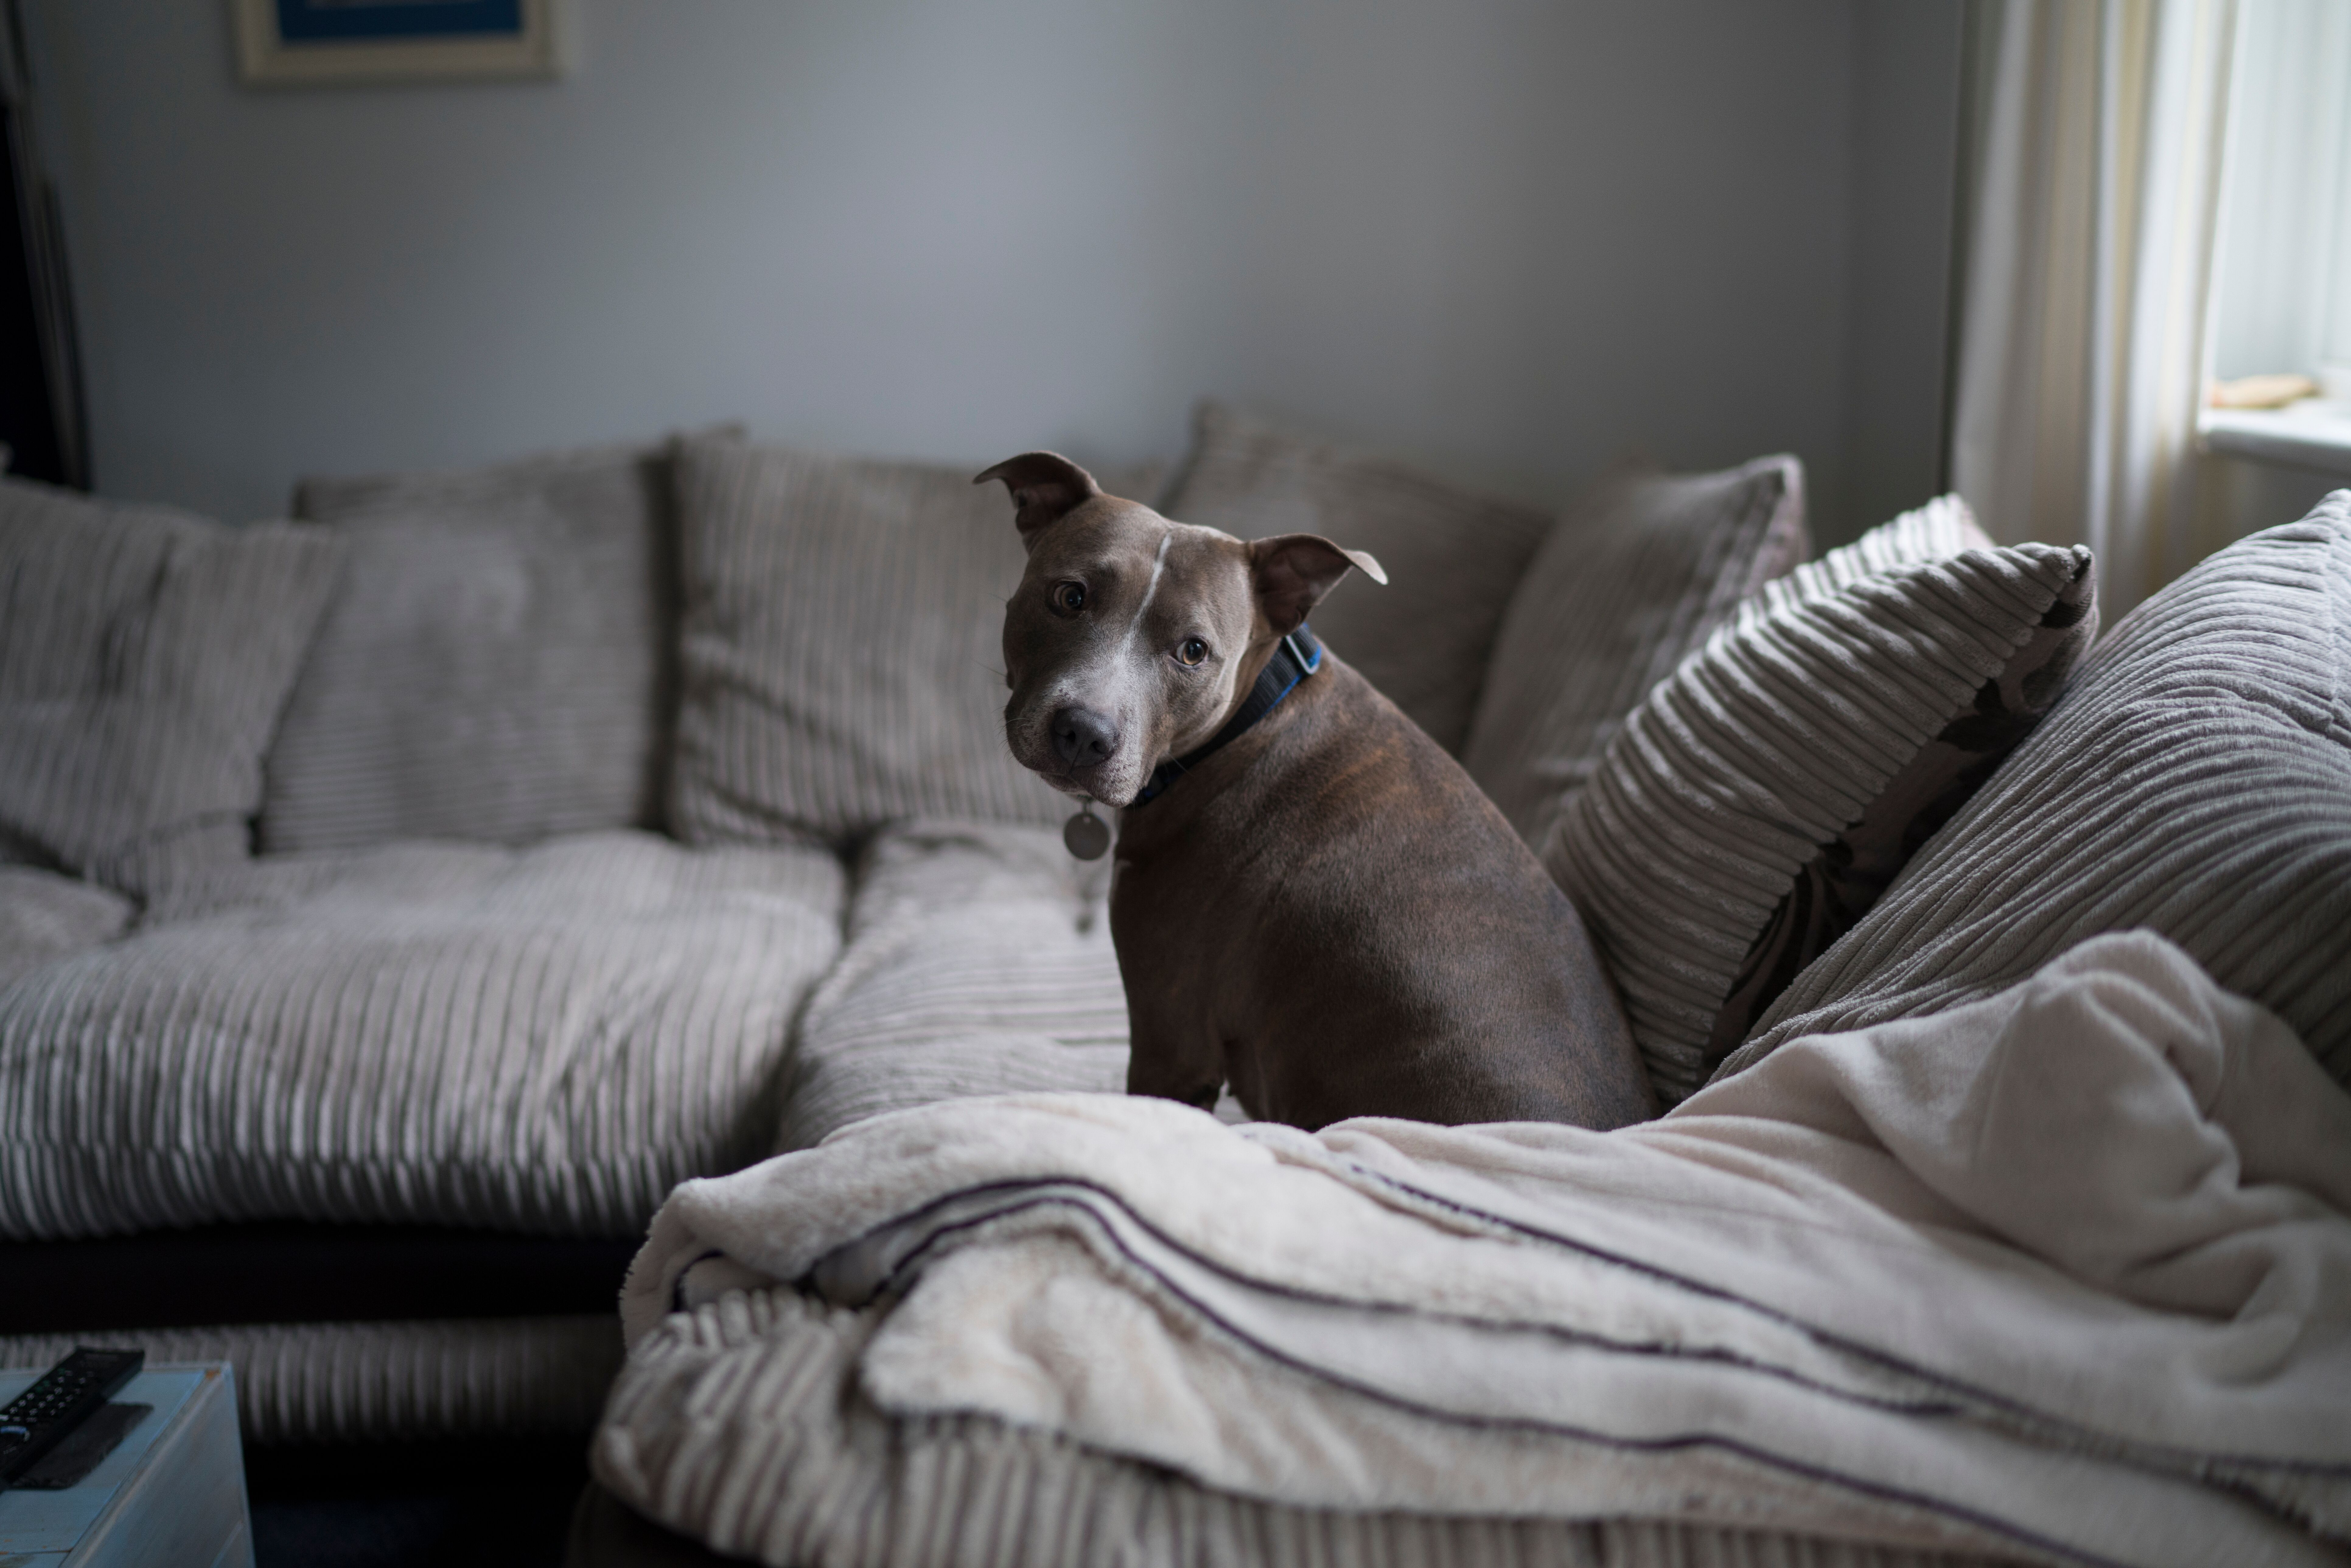 STAFFIES. THEY'RE SOFTER THAN YOU THINK.